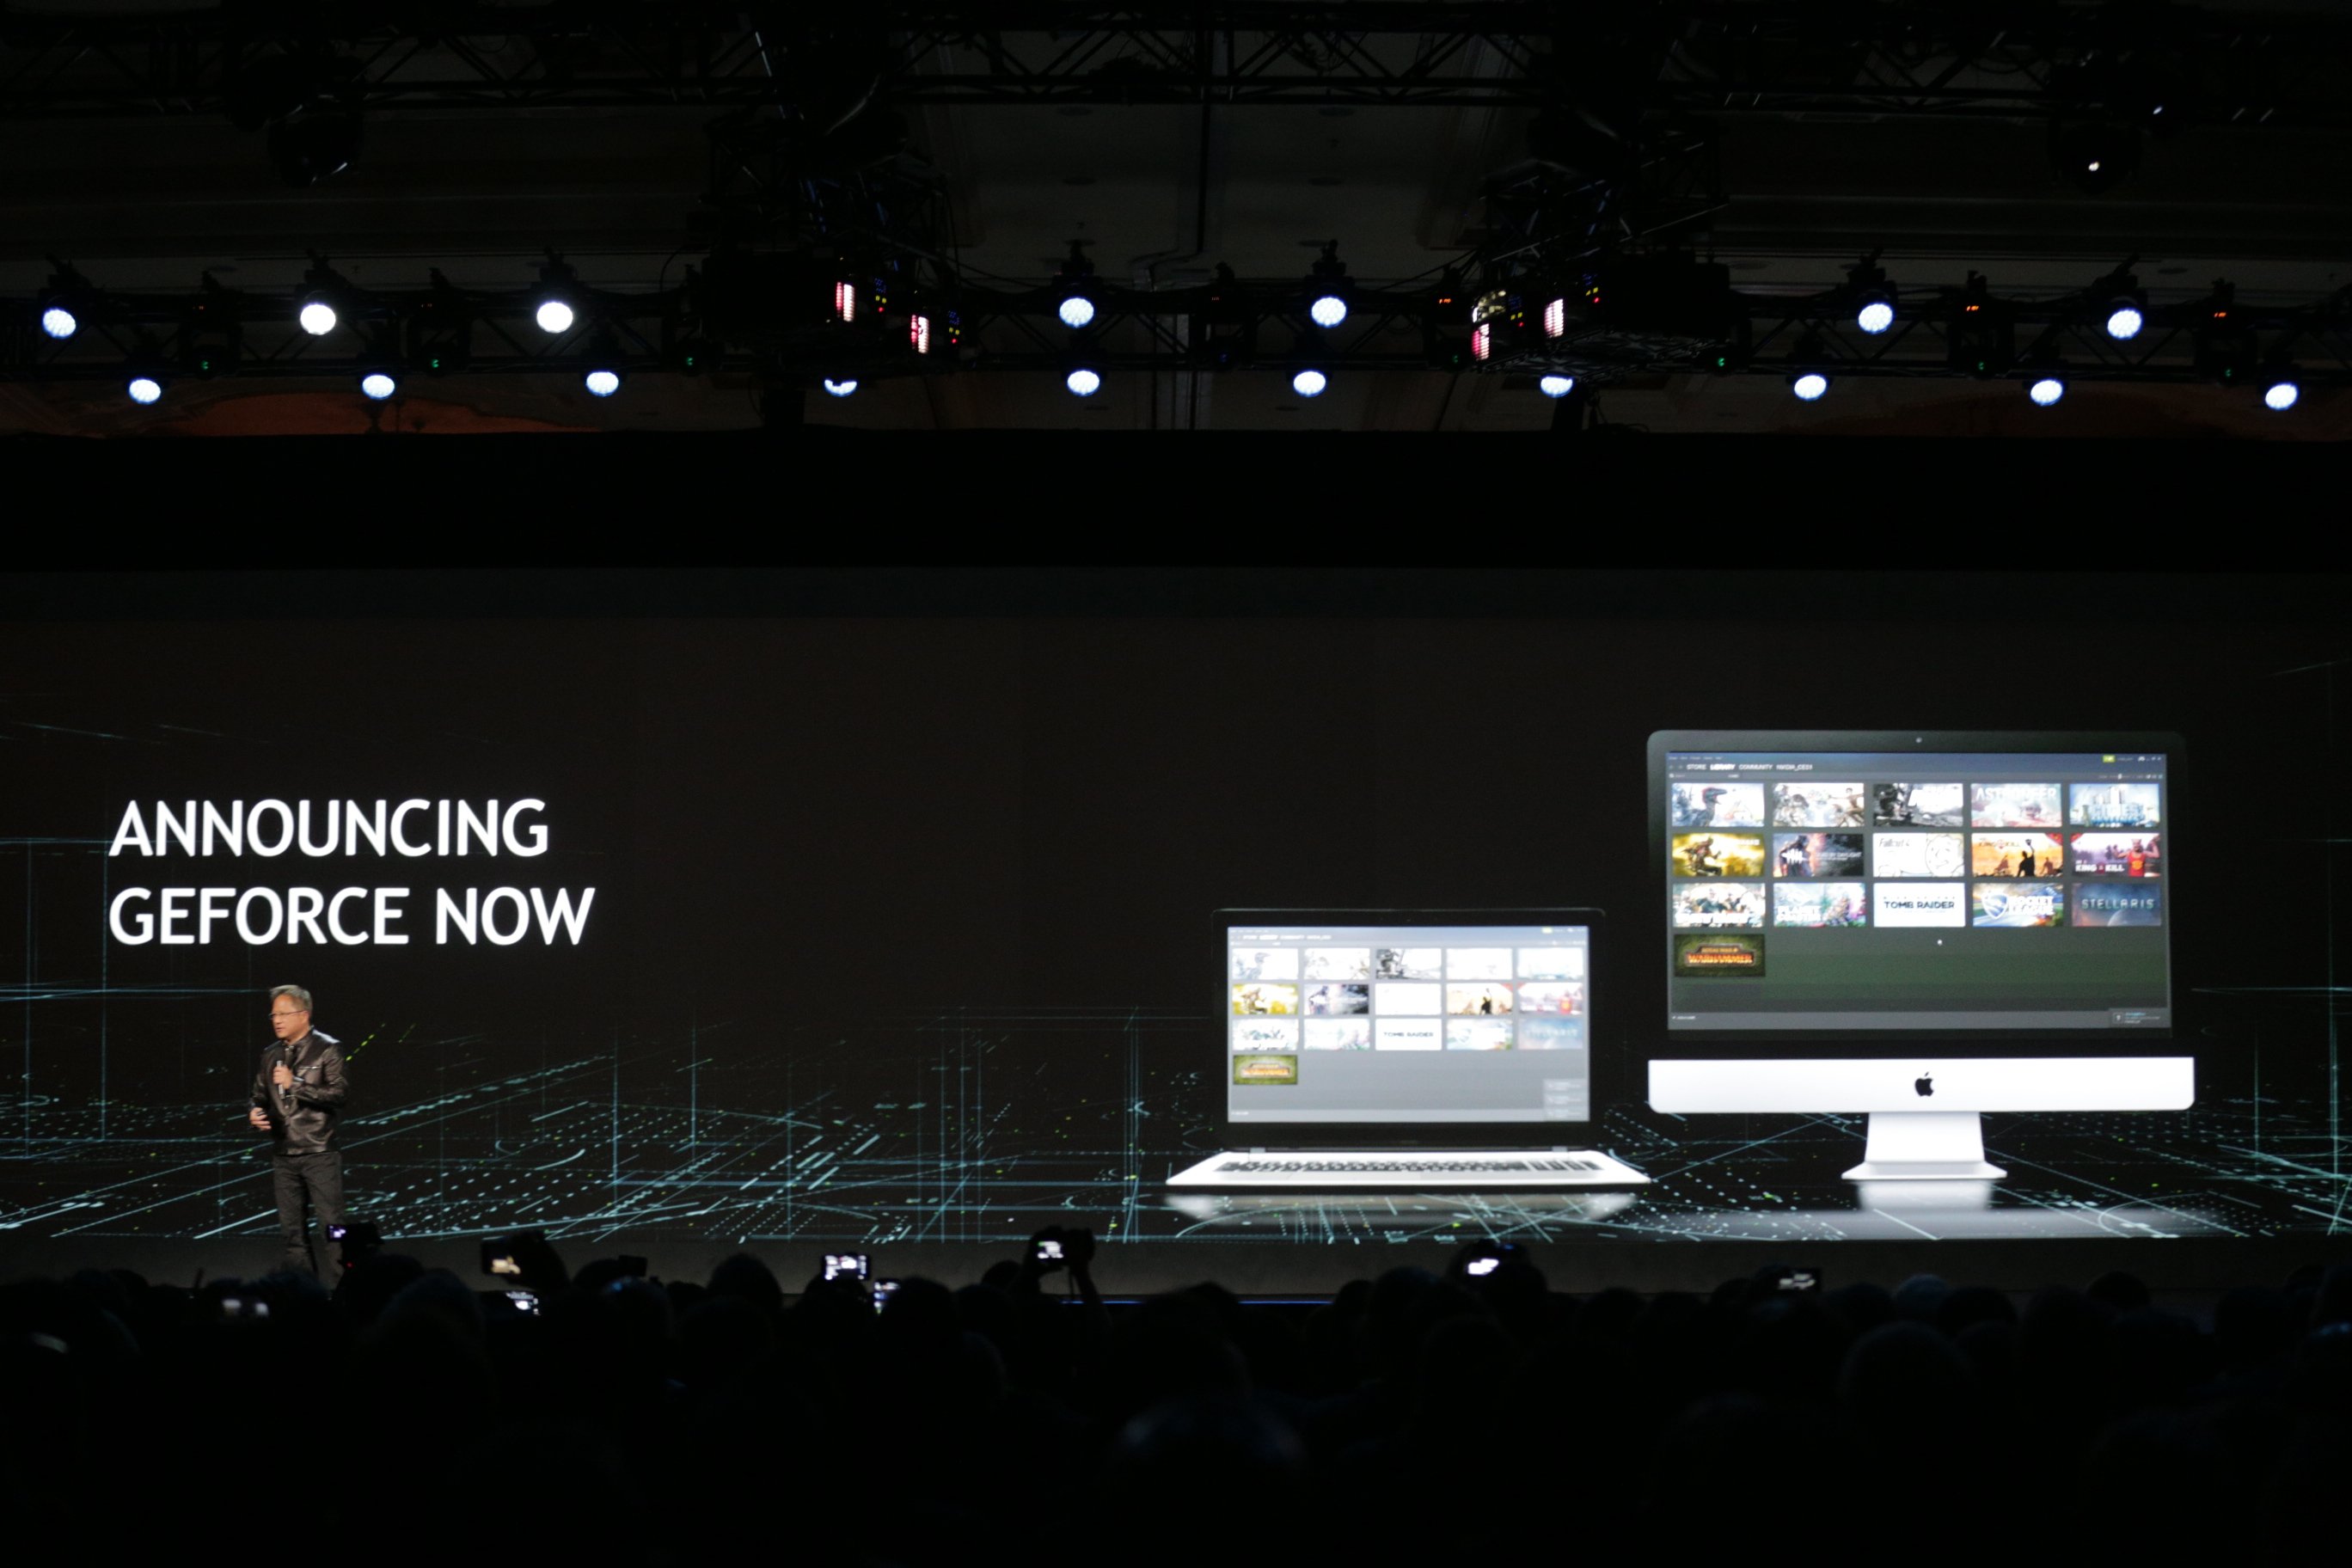 Nvidia's new GeForce Now service will turn any PC into an on-demand gaming machine